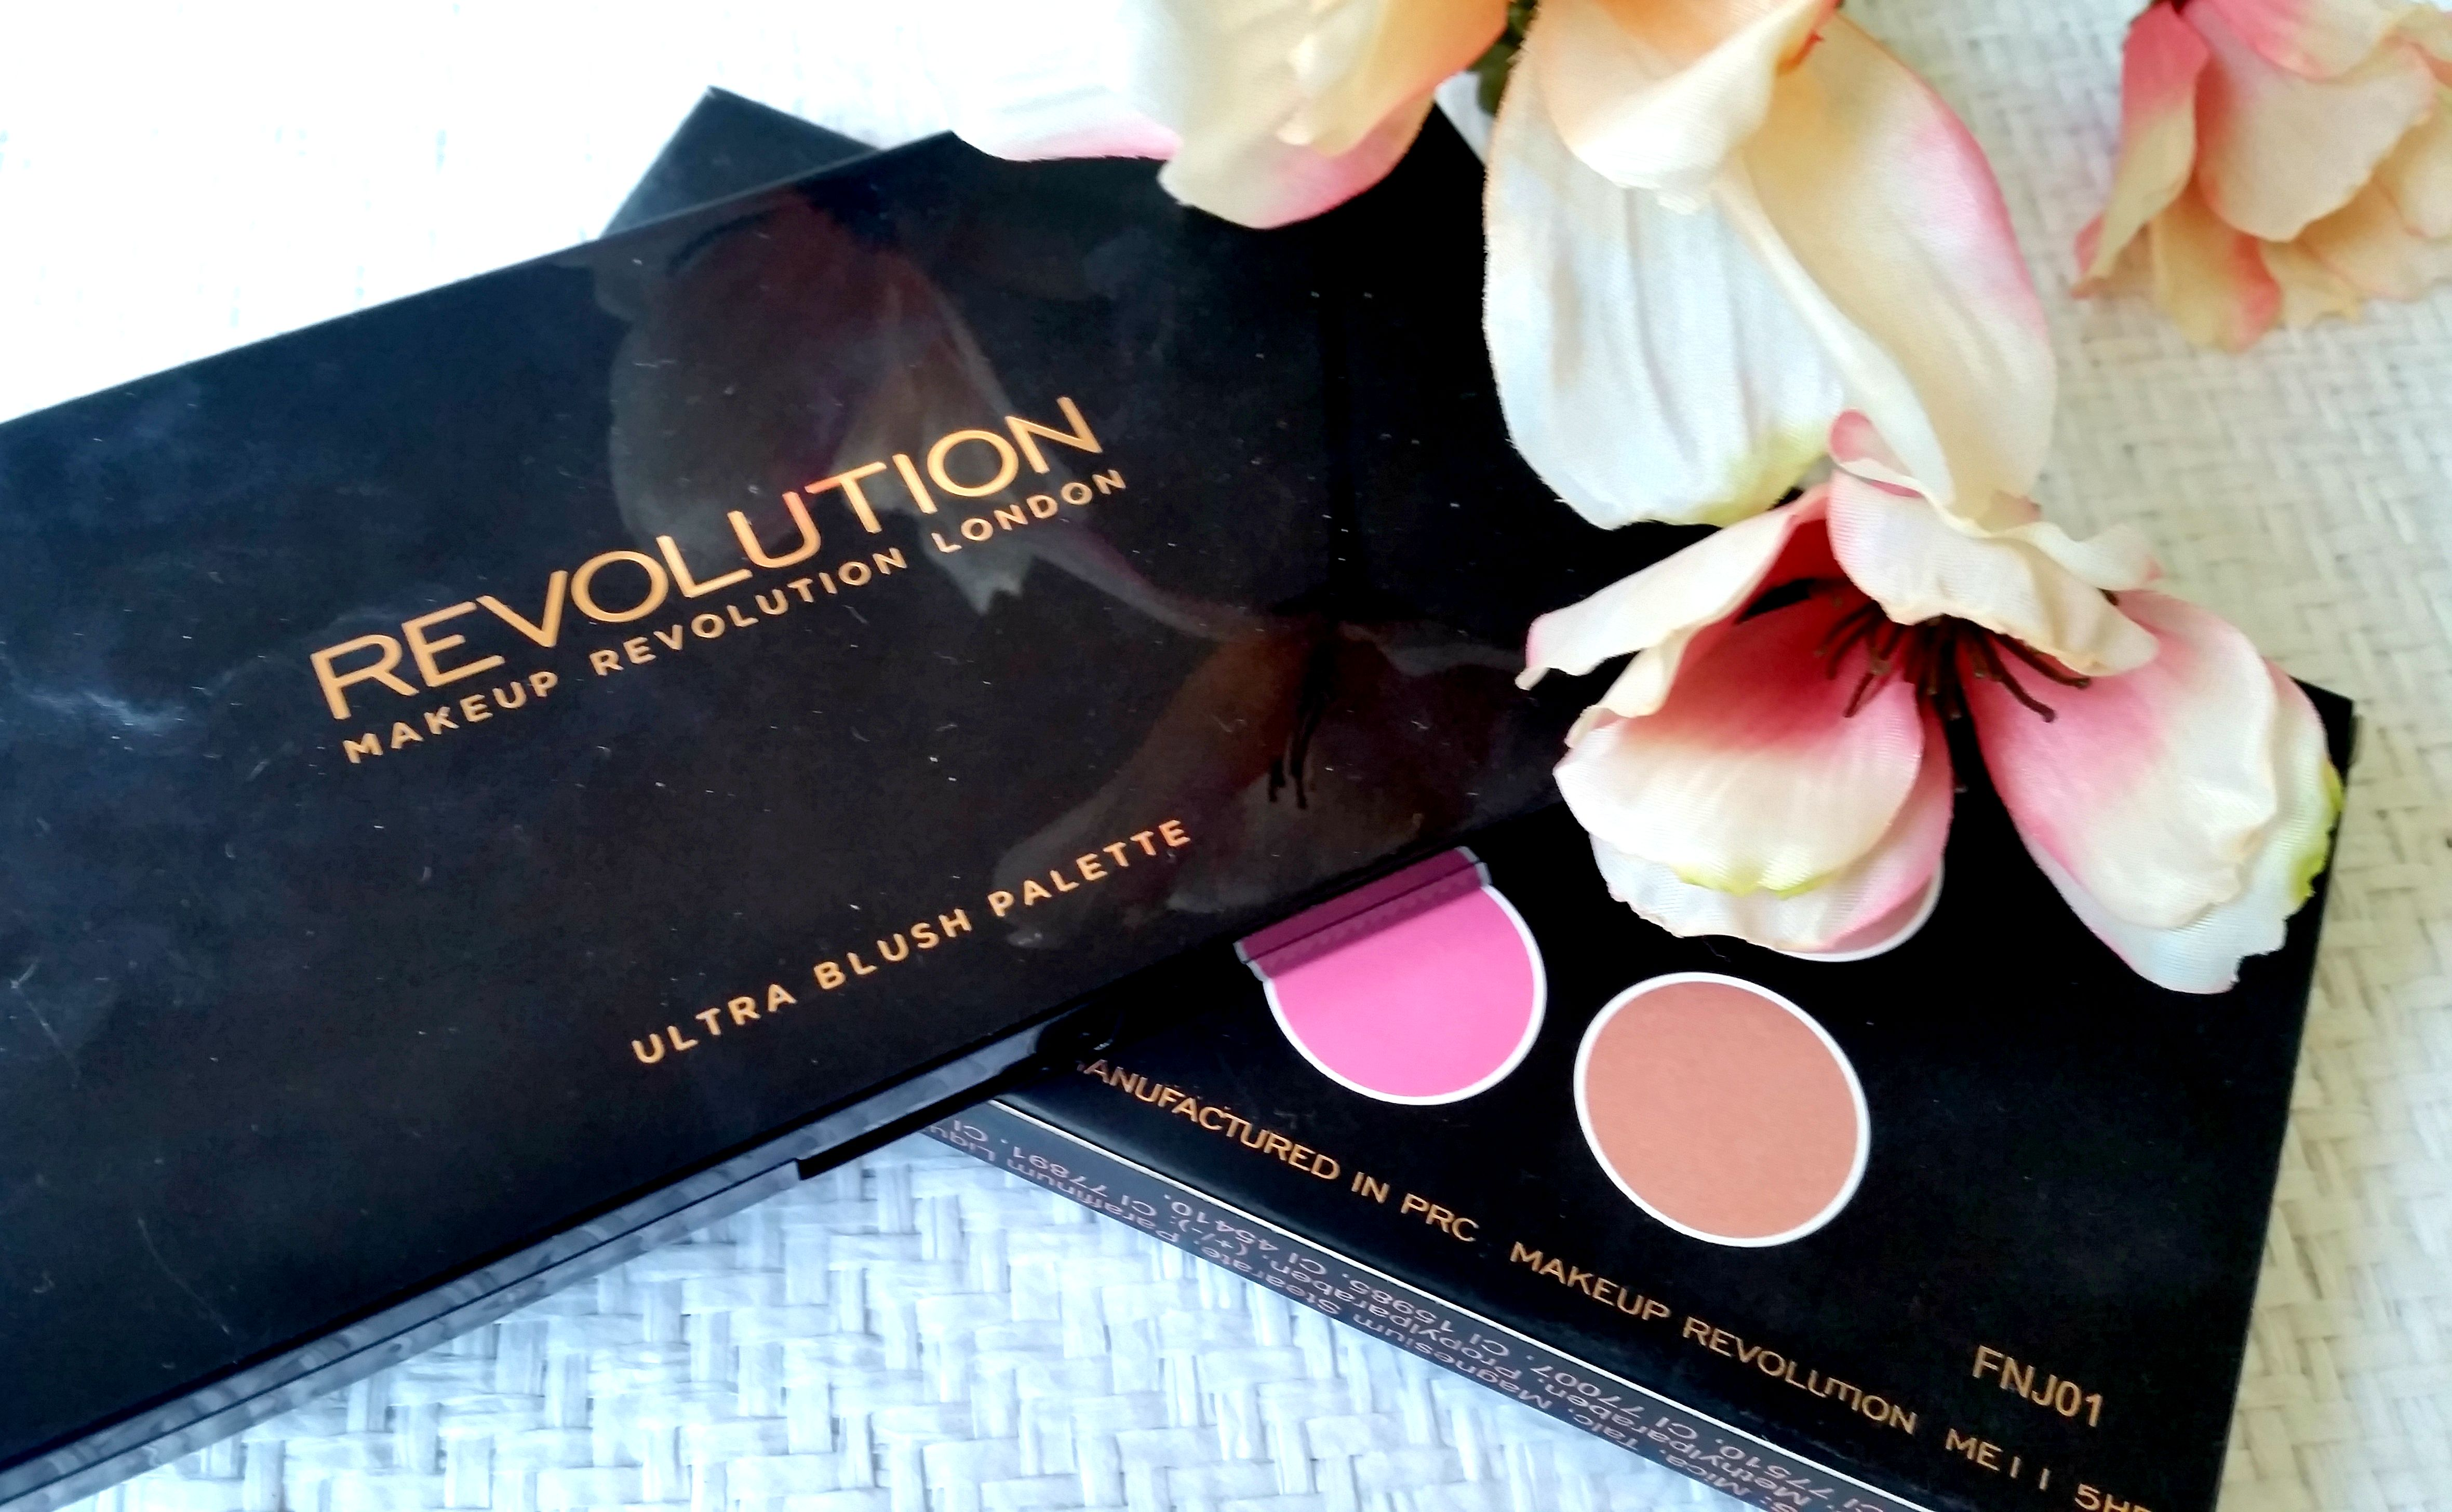 Makeup Revolution Blush Palette In All About Pink Modus Vivendi Make Up My Phase Is Still Strong And Going Mission To Own The World One Of Latest May I Say Glorious Editions